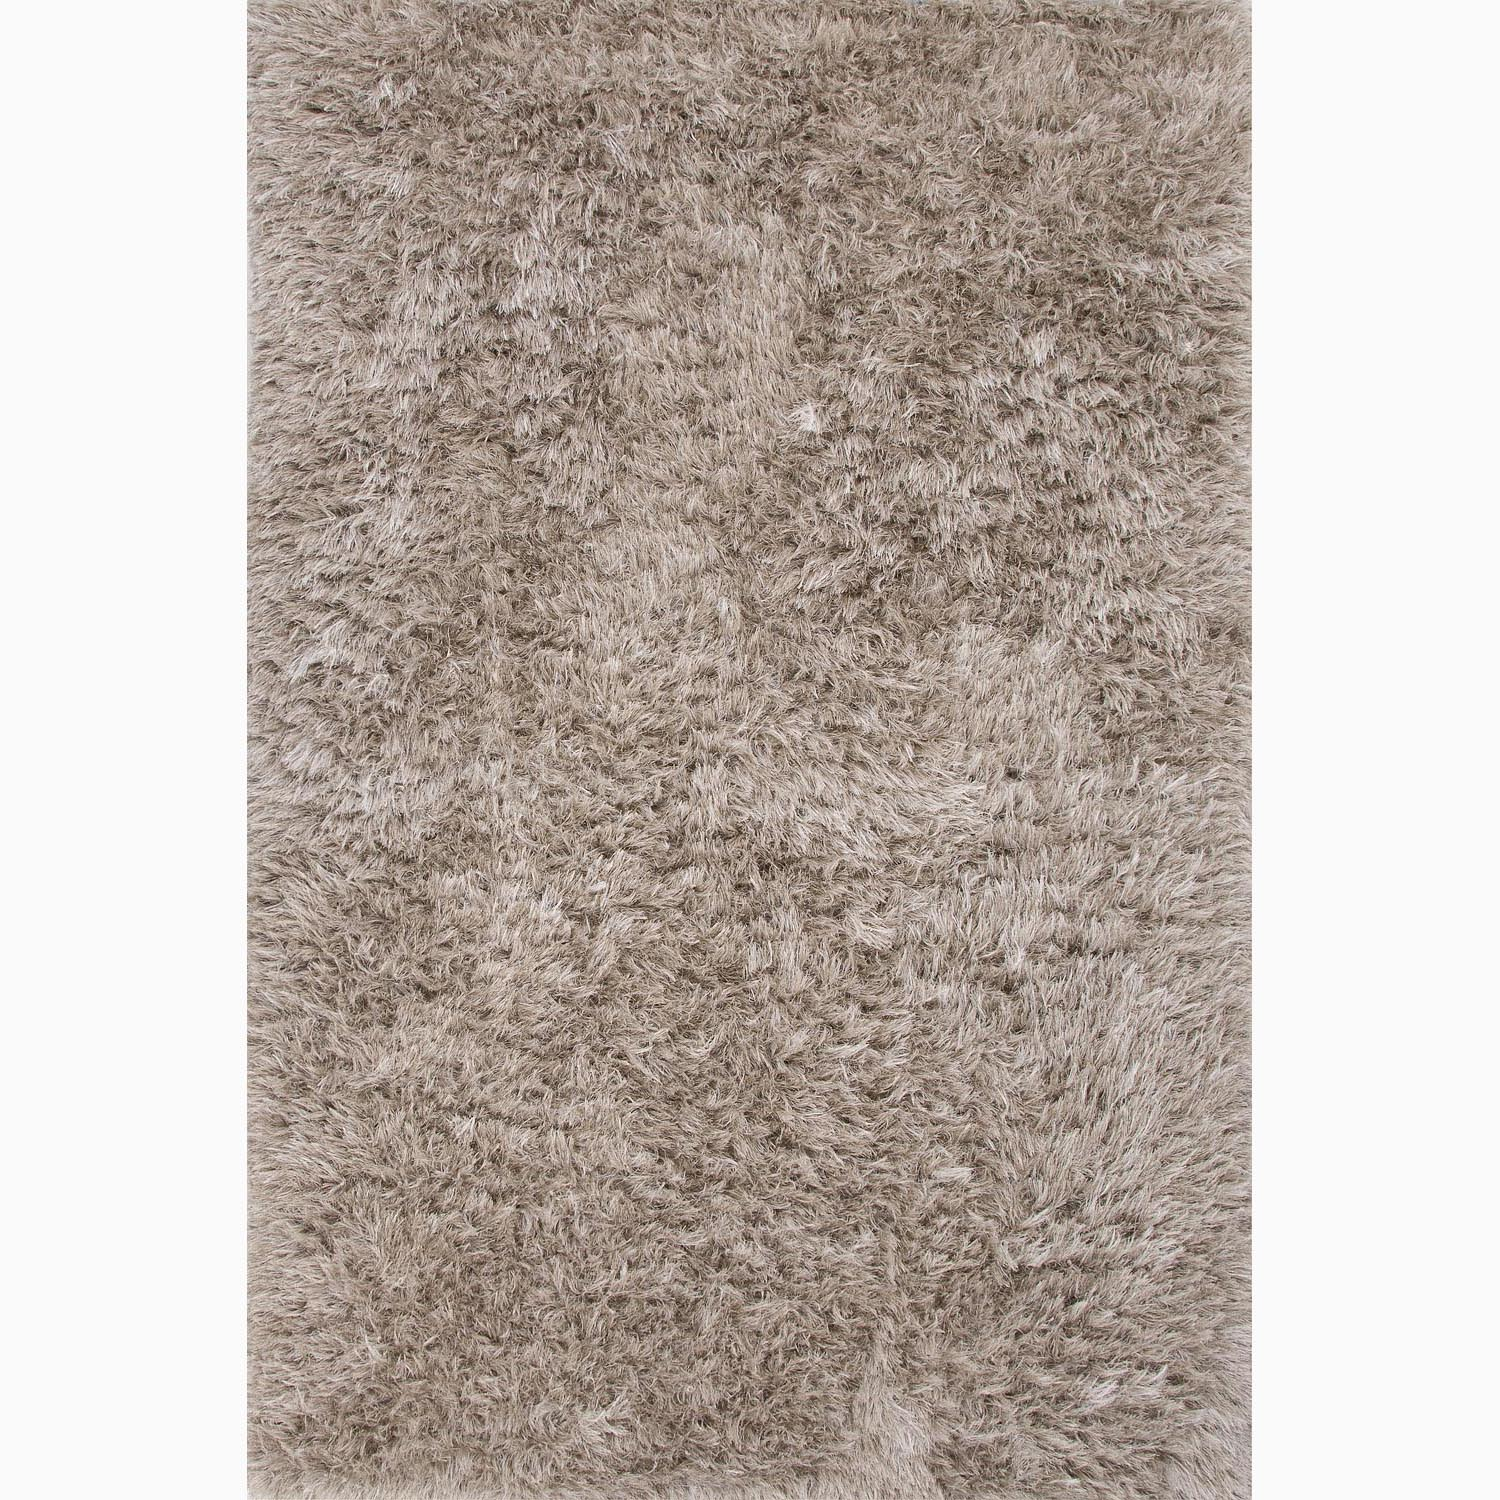 Handmade Gray/ Ivory Polyester Textured Rug (9 x 12)